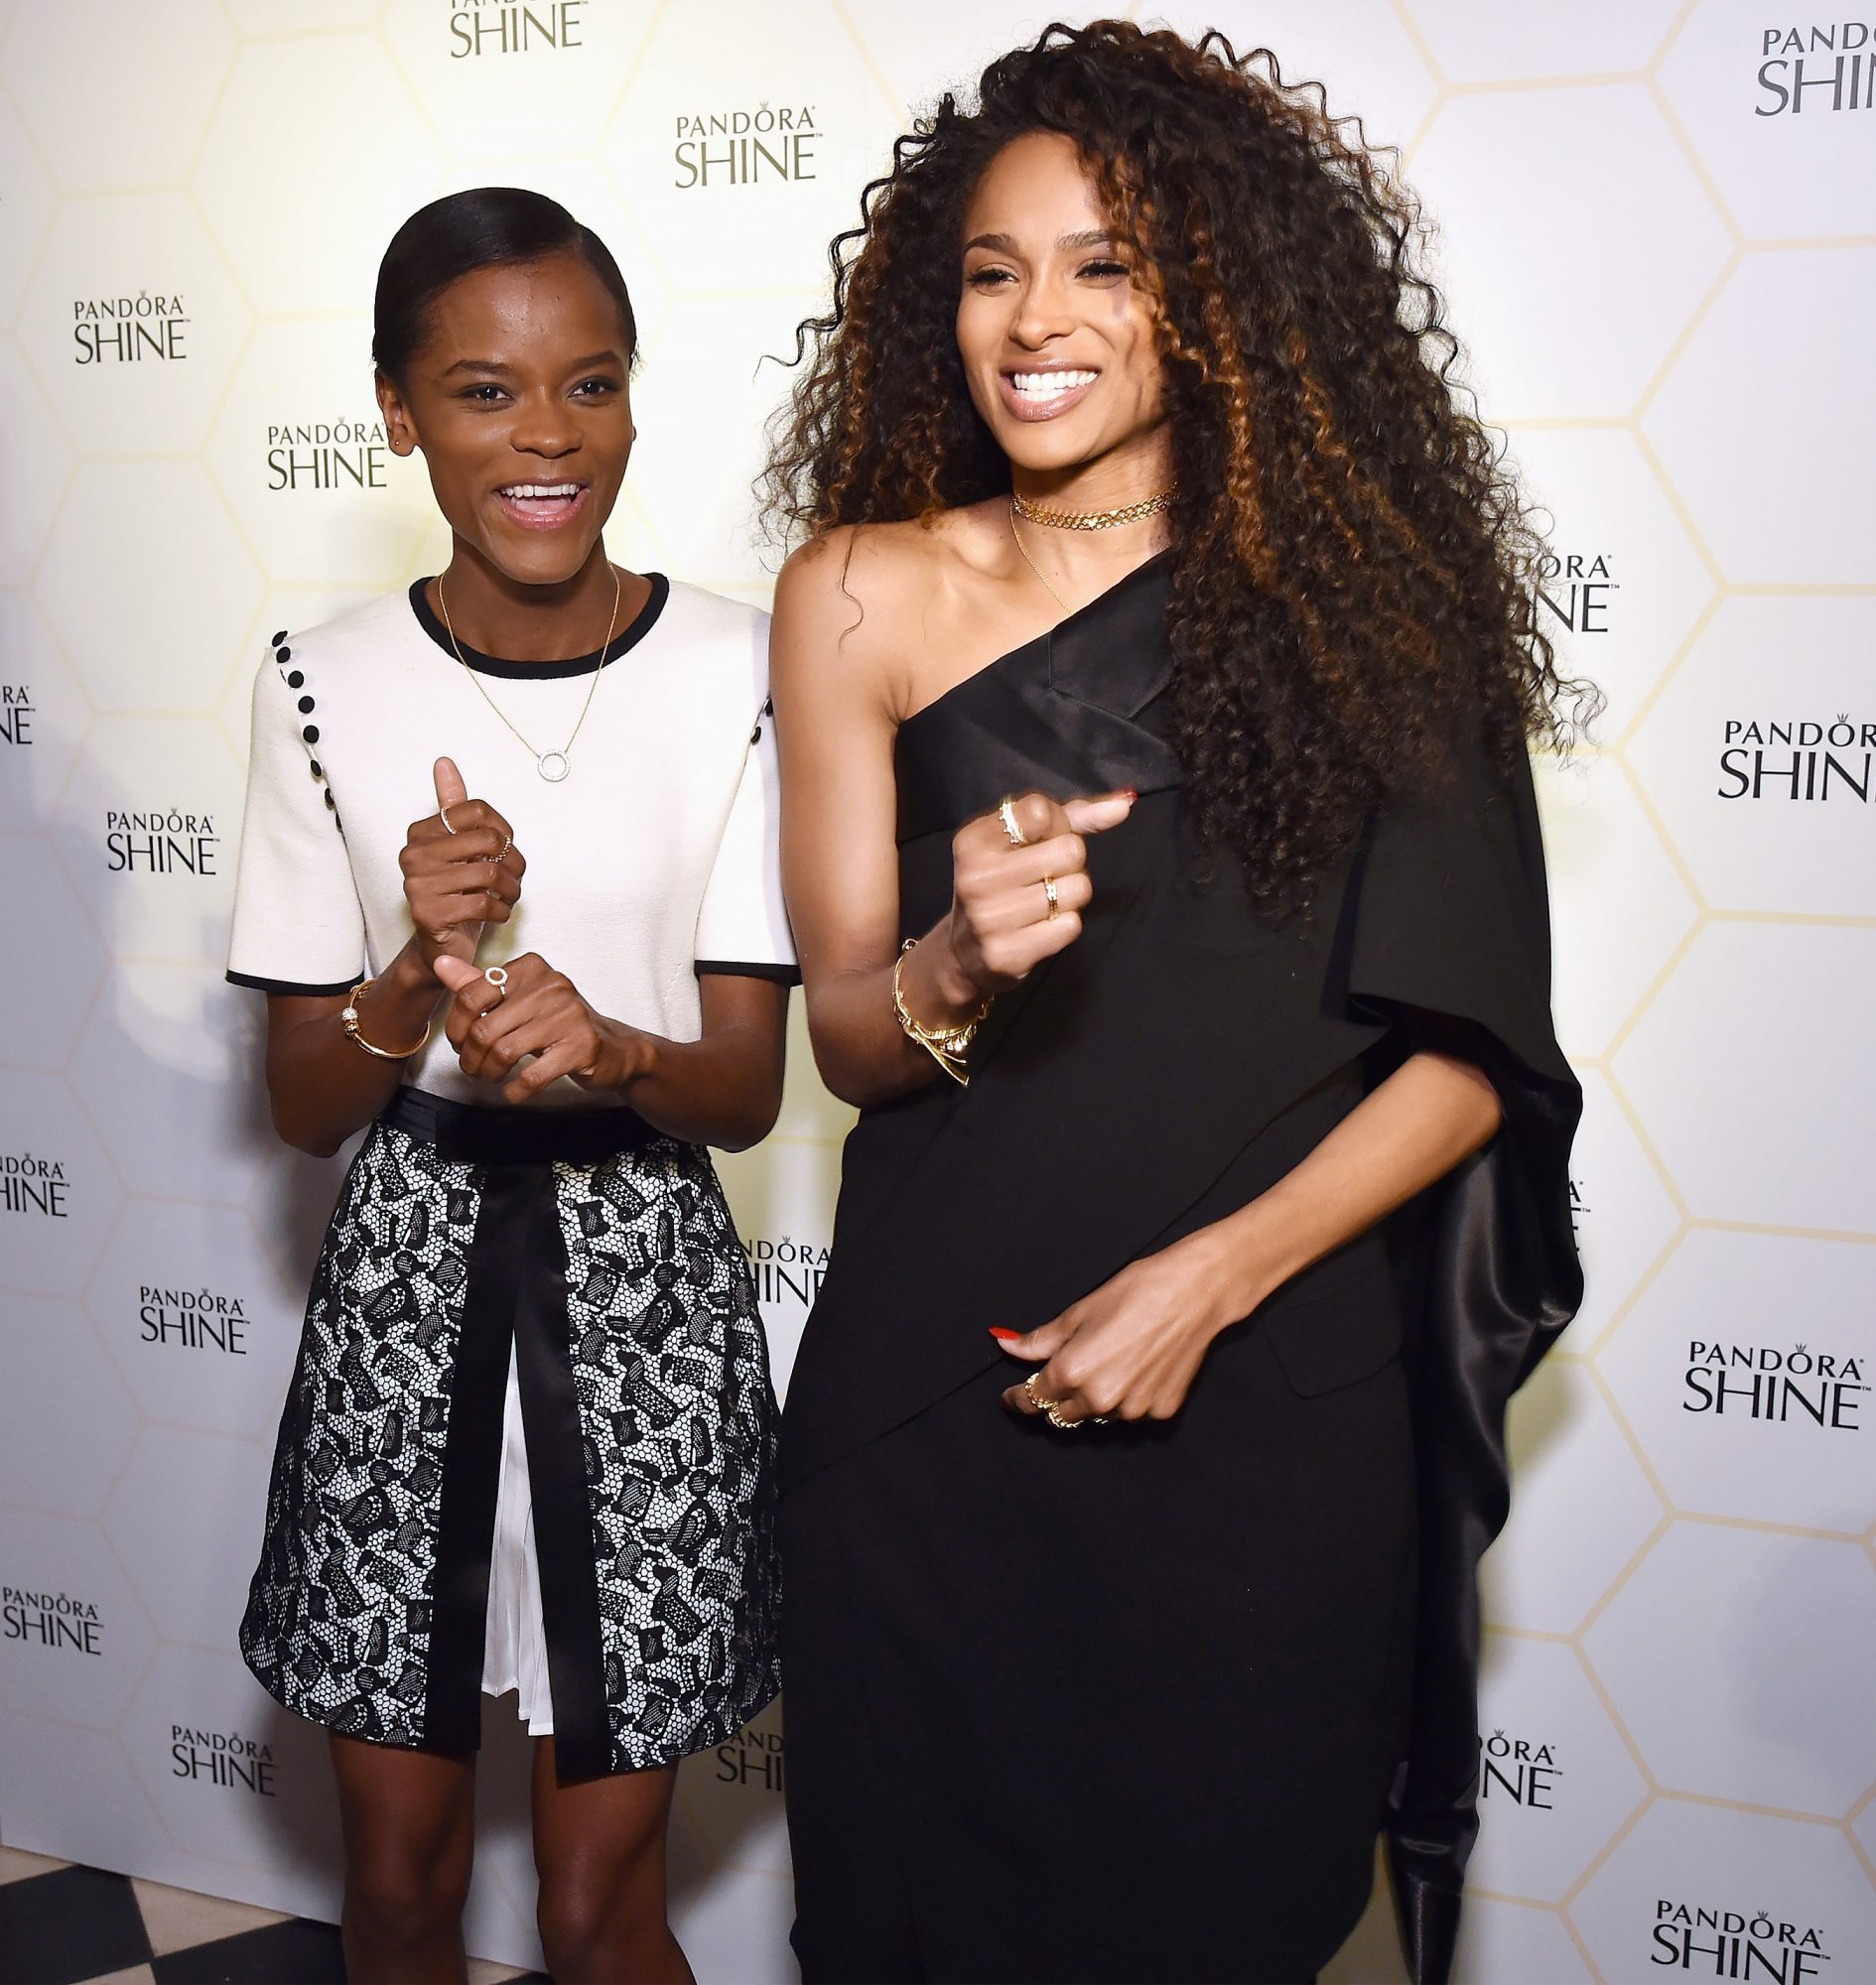 PANDORA Jewelry Shine Collection Launch With Ciara